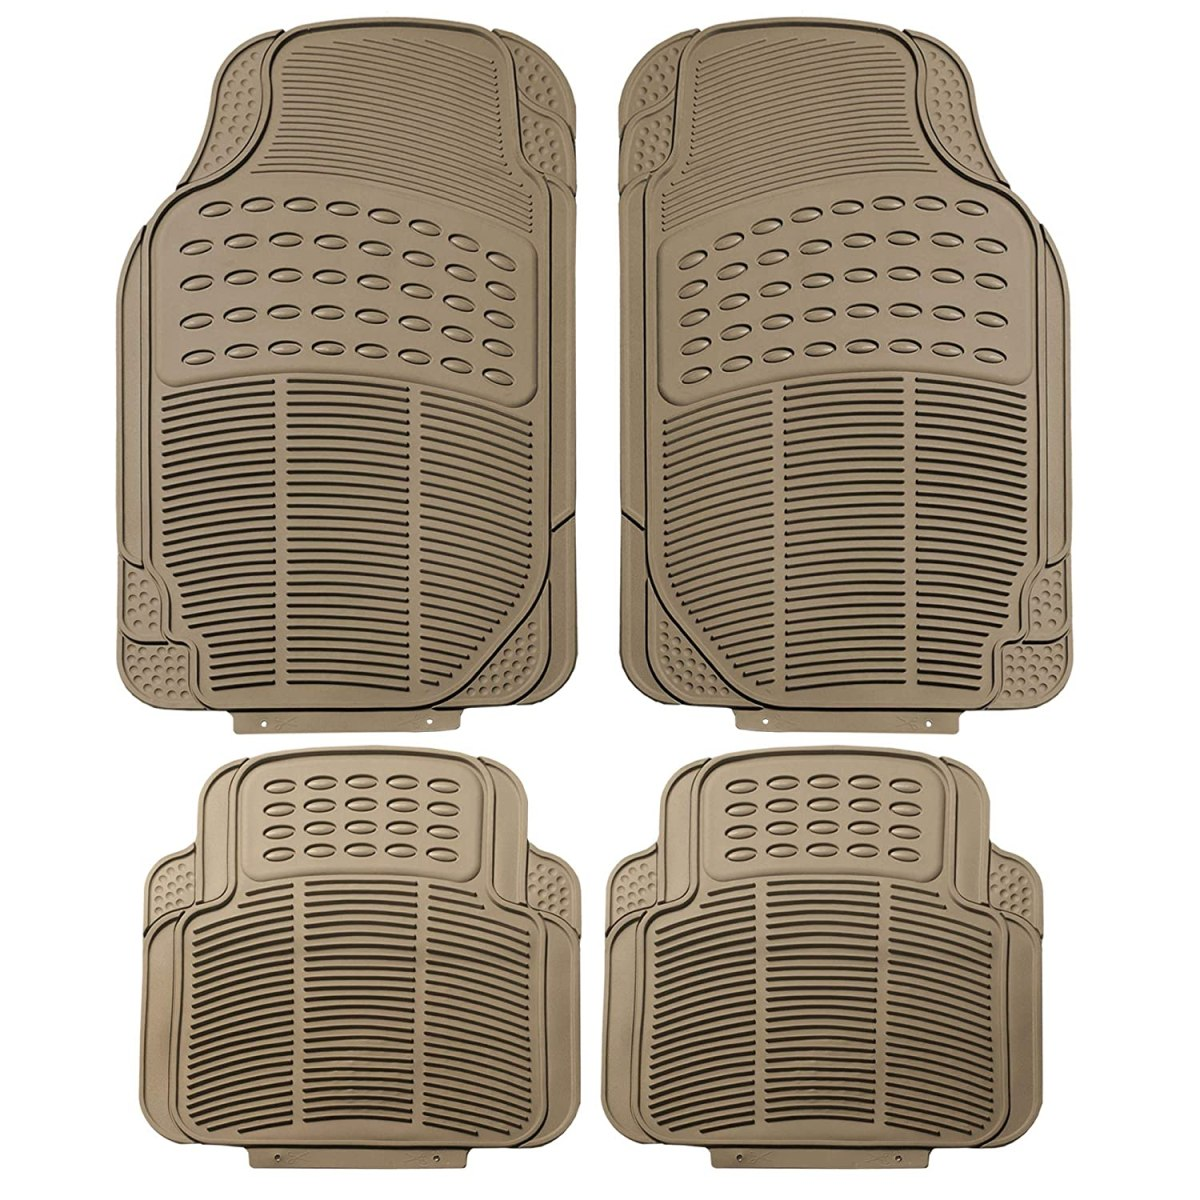 Best Floor Mats Reviews FH Group F11305BEIGE Tan All Weather Floor Mat, 4 Piece (Full Set Trimmable Heavy